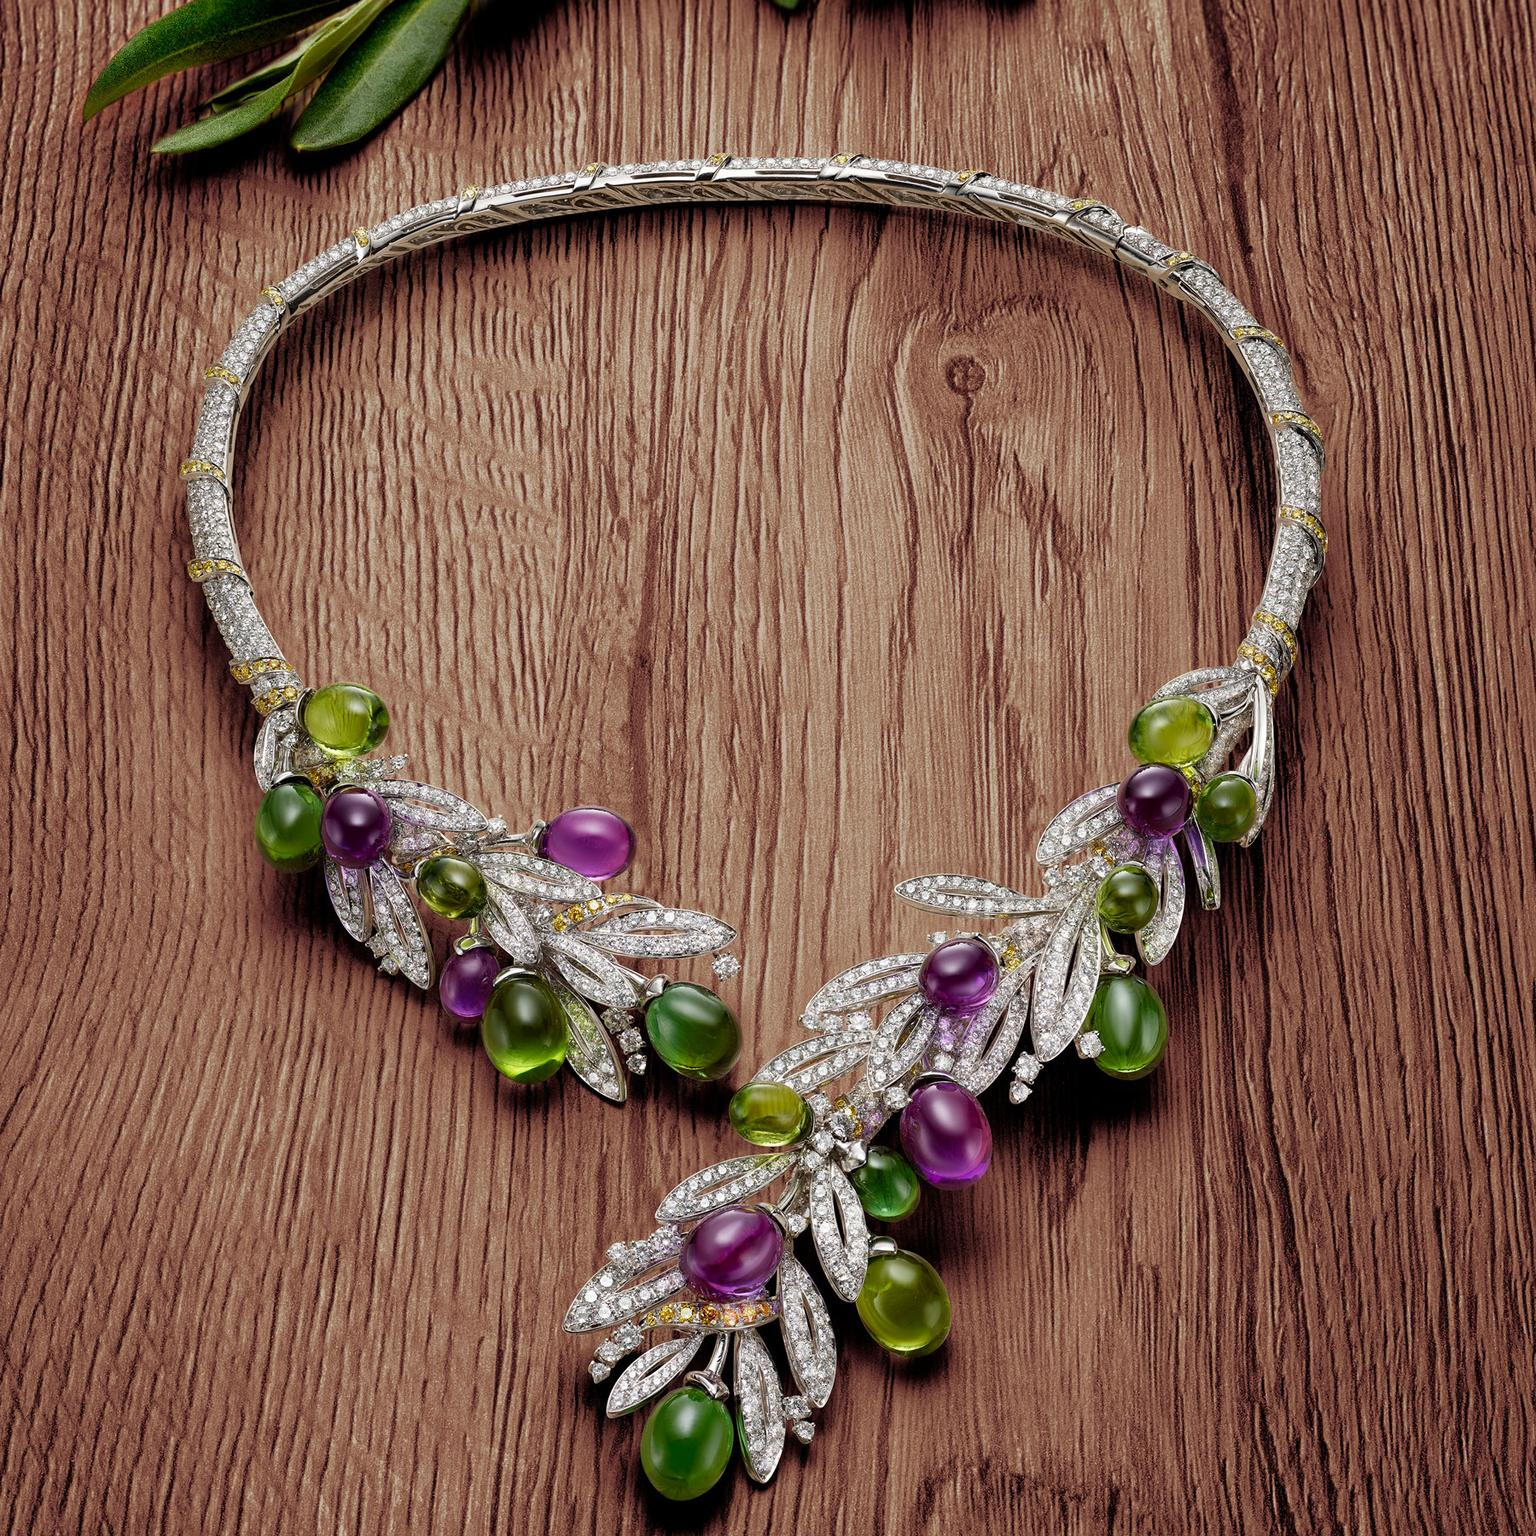 Bulgari Festa Olive high jewellery necklace